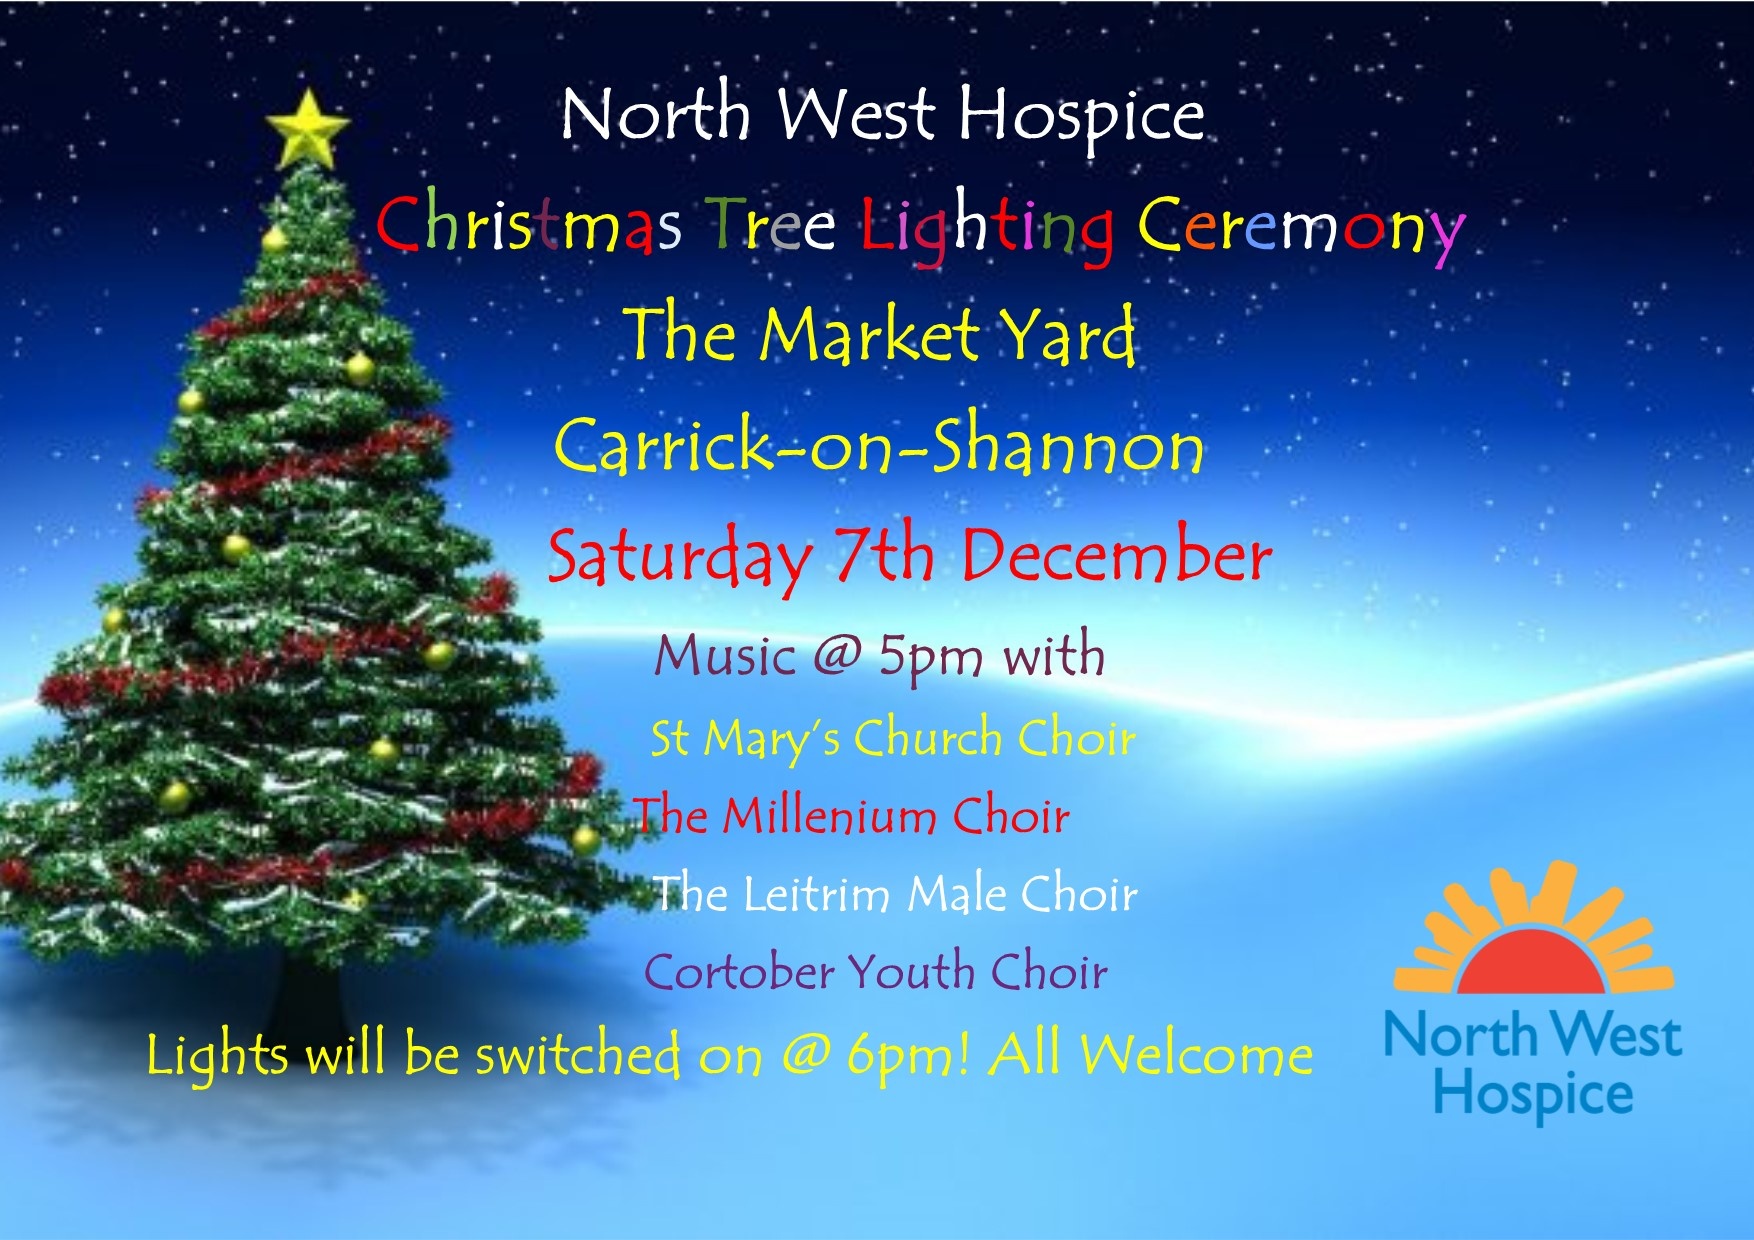 North West Hospice Christmas Tree Lighting Ceremony Carrick-on-Shannon